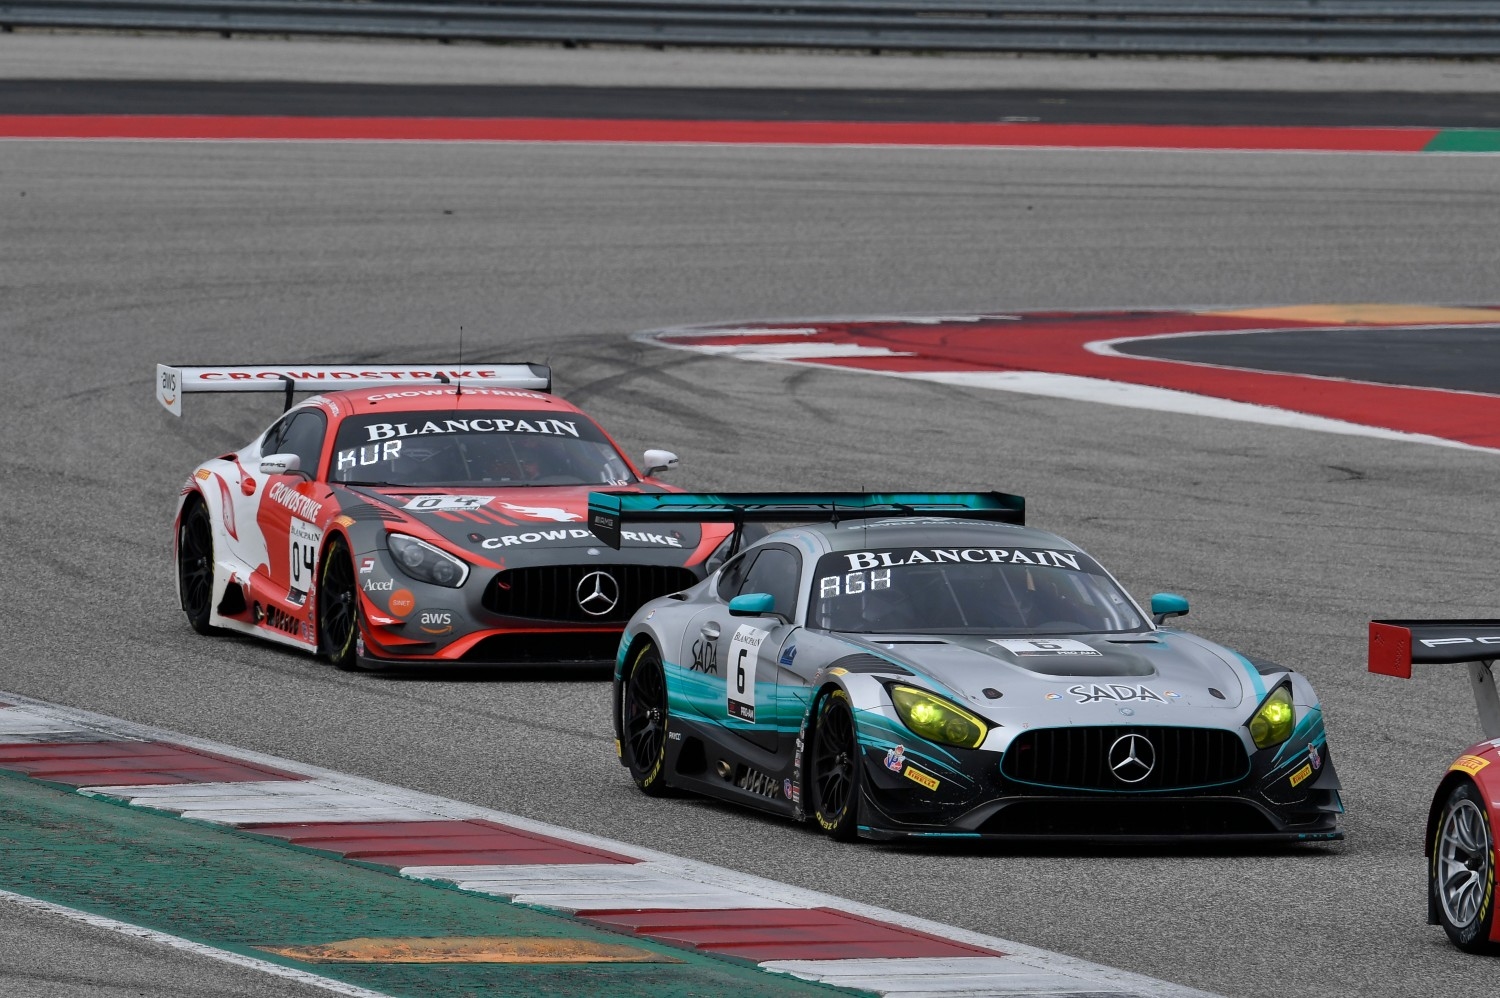 US RaceTronics, Steven Aghakhani, Richard Antinucci, Mercedes-AMG GT3, Sada Systems, #04: DXDT Racing, George Kurtz, Colin Braun, Mercedes-AMG GT3, Crowdstri